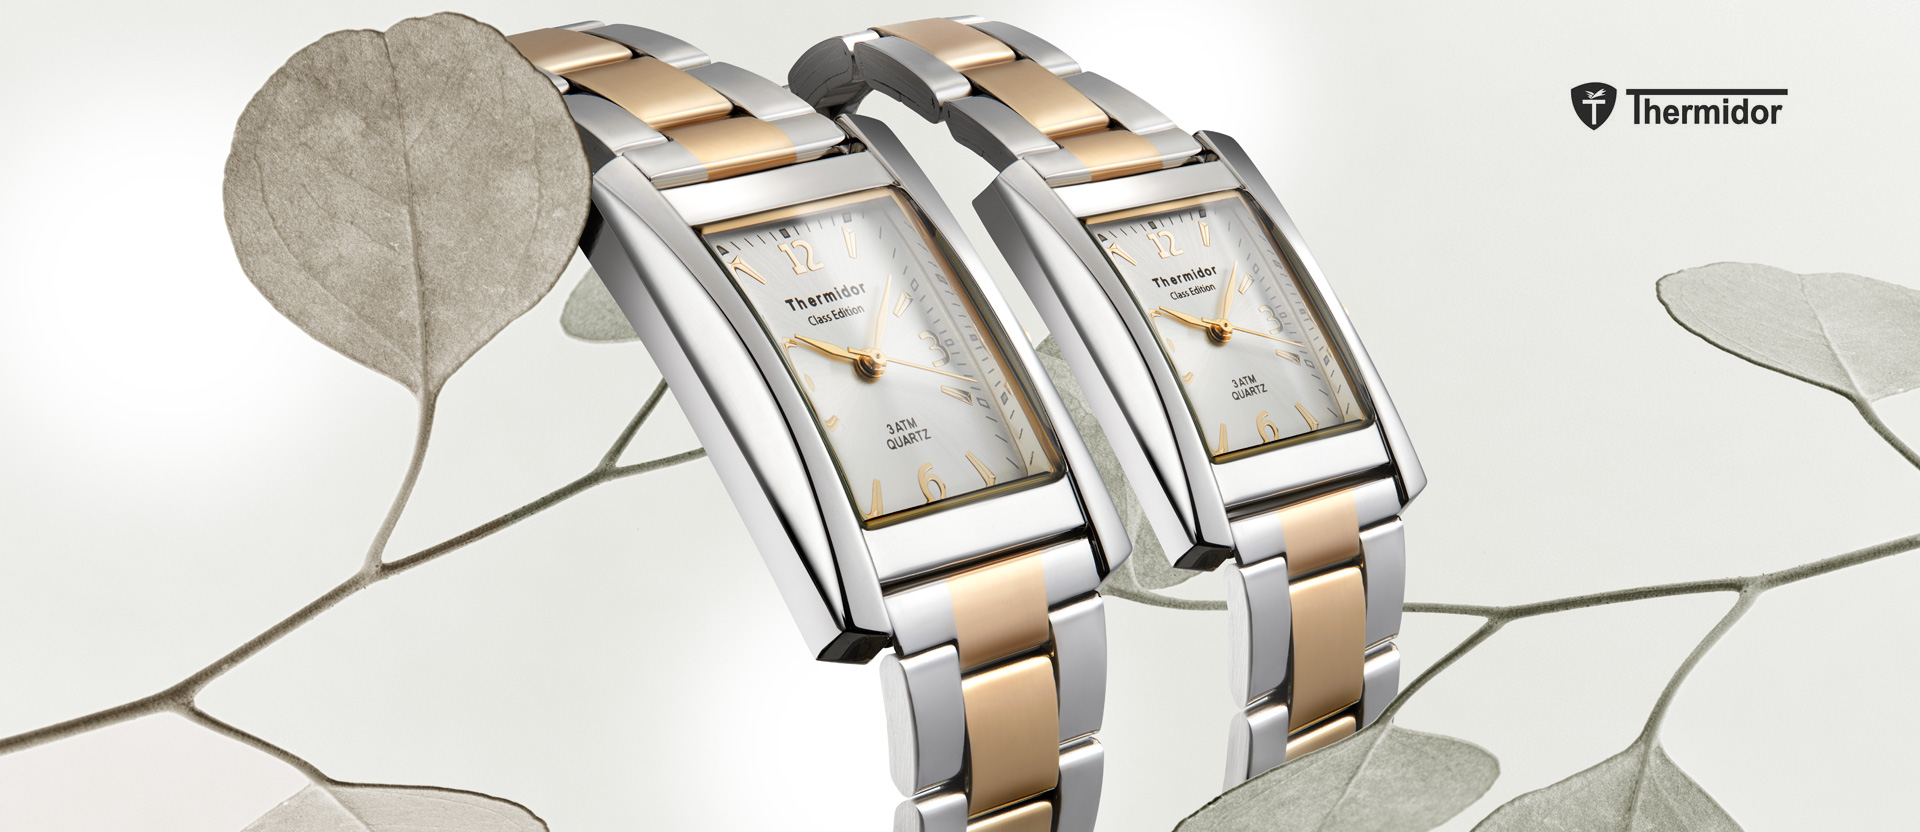 PRODUCTOS LUFTHOUS - LUFTHOUS - RELOJES - THERMIDOR - RELOJ THERMIDOR CLASS EDITION